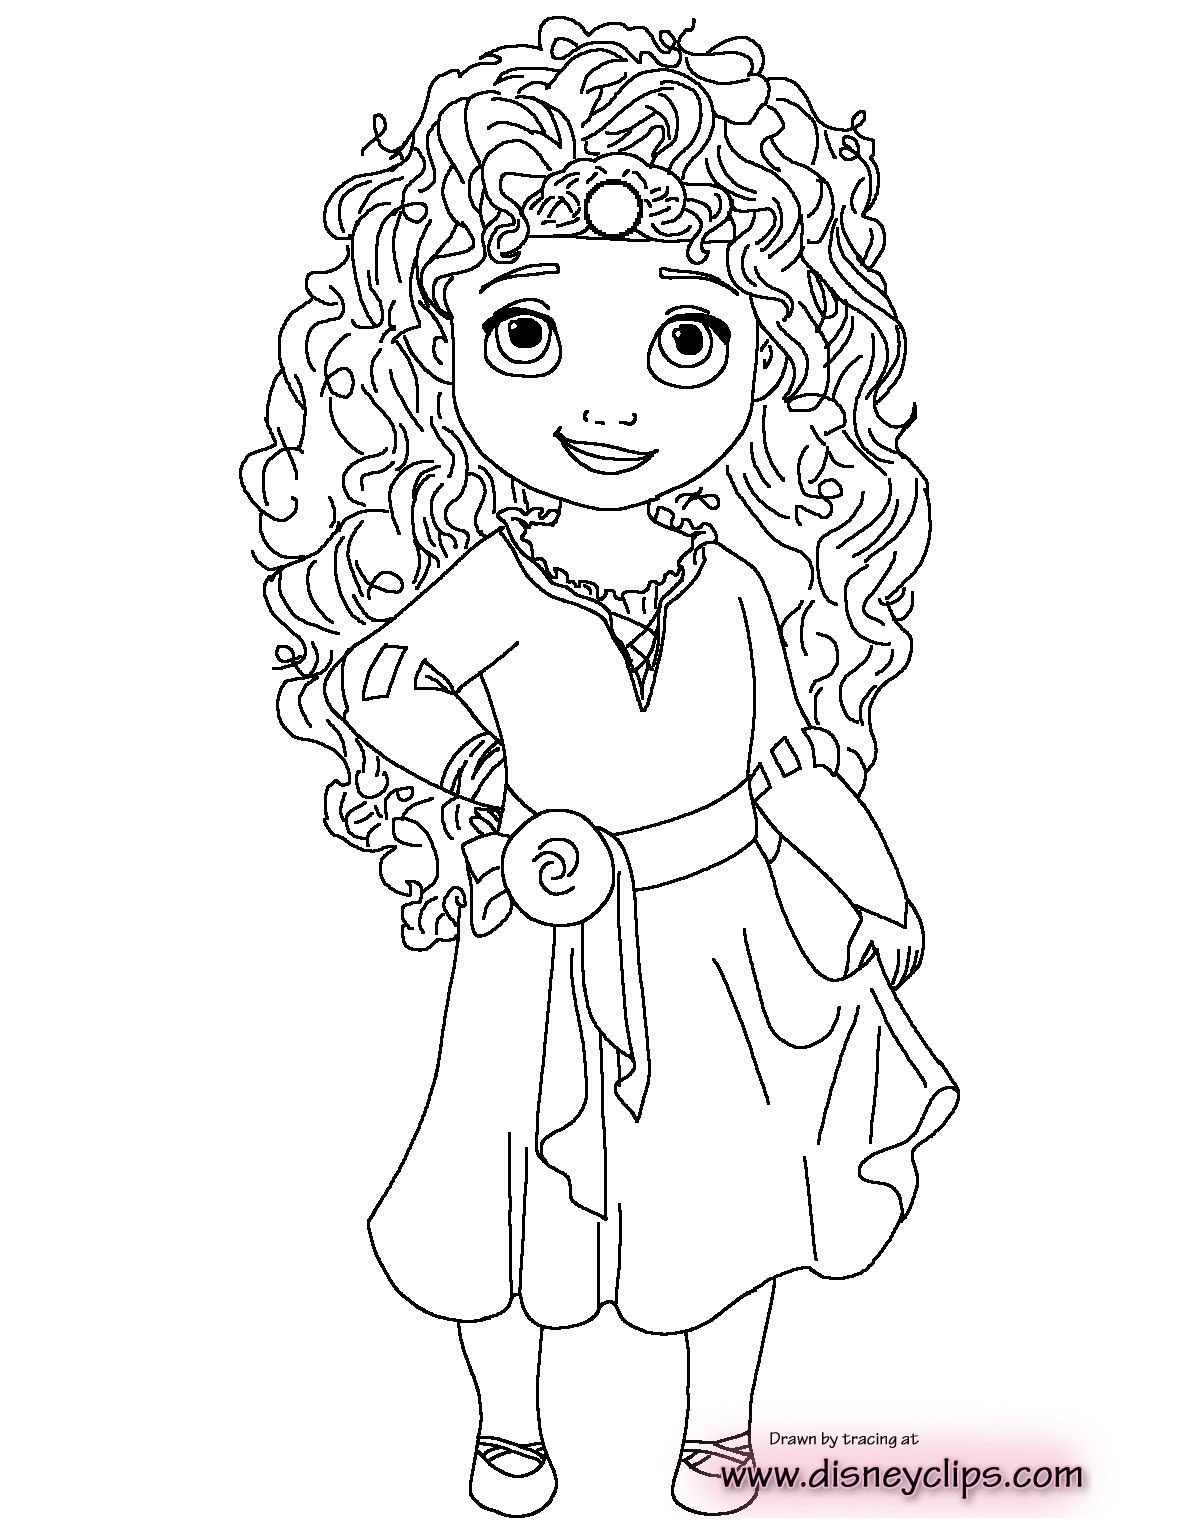 Coloring Pages Of Baby Princess From The Thousand Images On The Web About Color Disney Princess Coloring Pages Princess Coloring Pages Disney Princess Colors